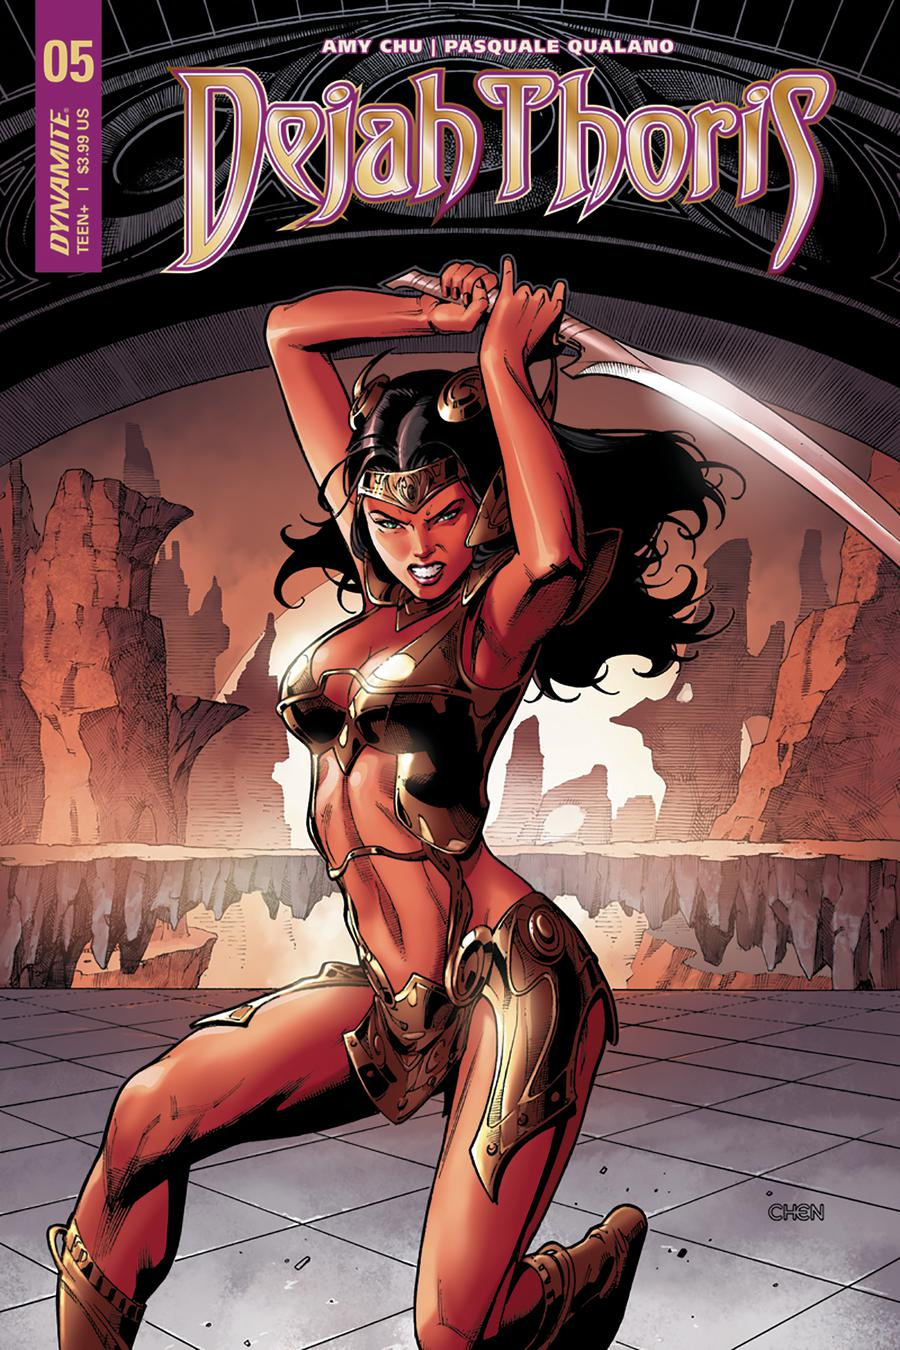 Dejah Thoris Vol 2 #5 Cover B Variant Sean Chen Cover